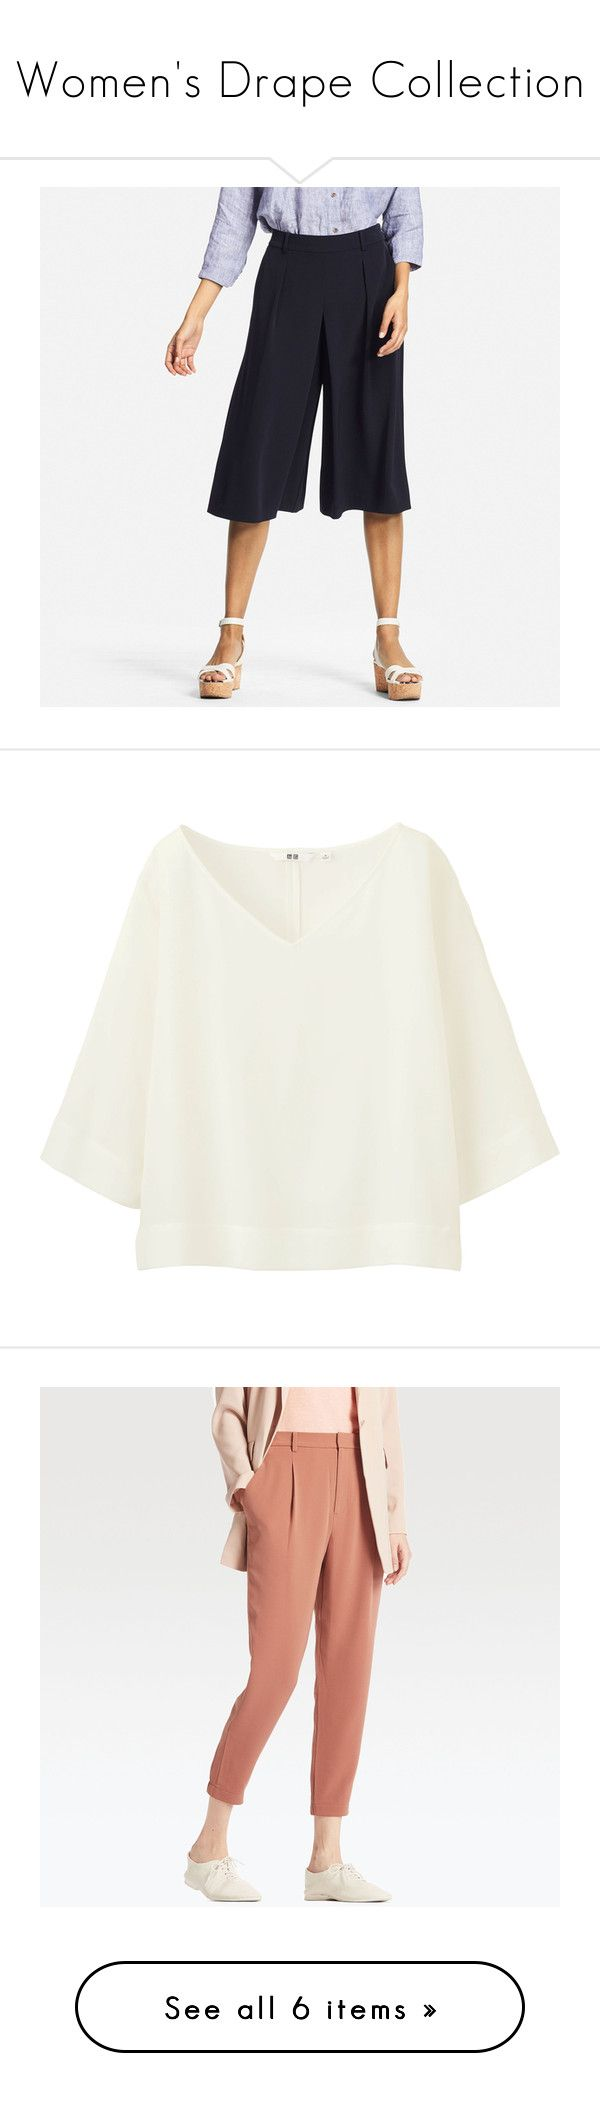 """Women's Drape Collection"" by uniqlo ❤ liked on Polyvore featuring navy, uniqlo, tops, blouses, off white, formal tops, 3/4 sleeve v neck top, 3/4 length sleeve tops, 3/4 sleeve tops and v neck blouse"